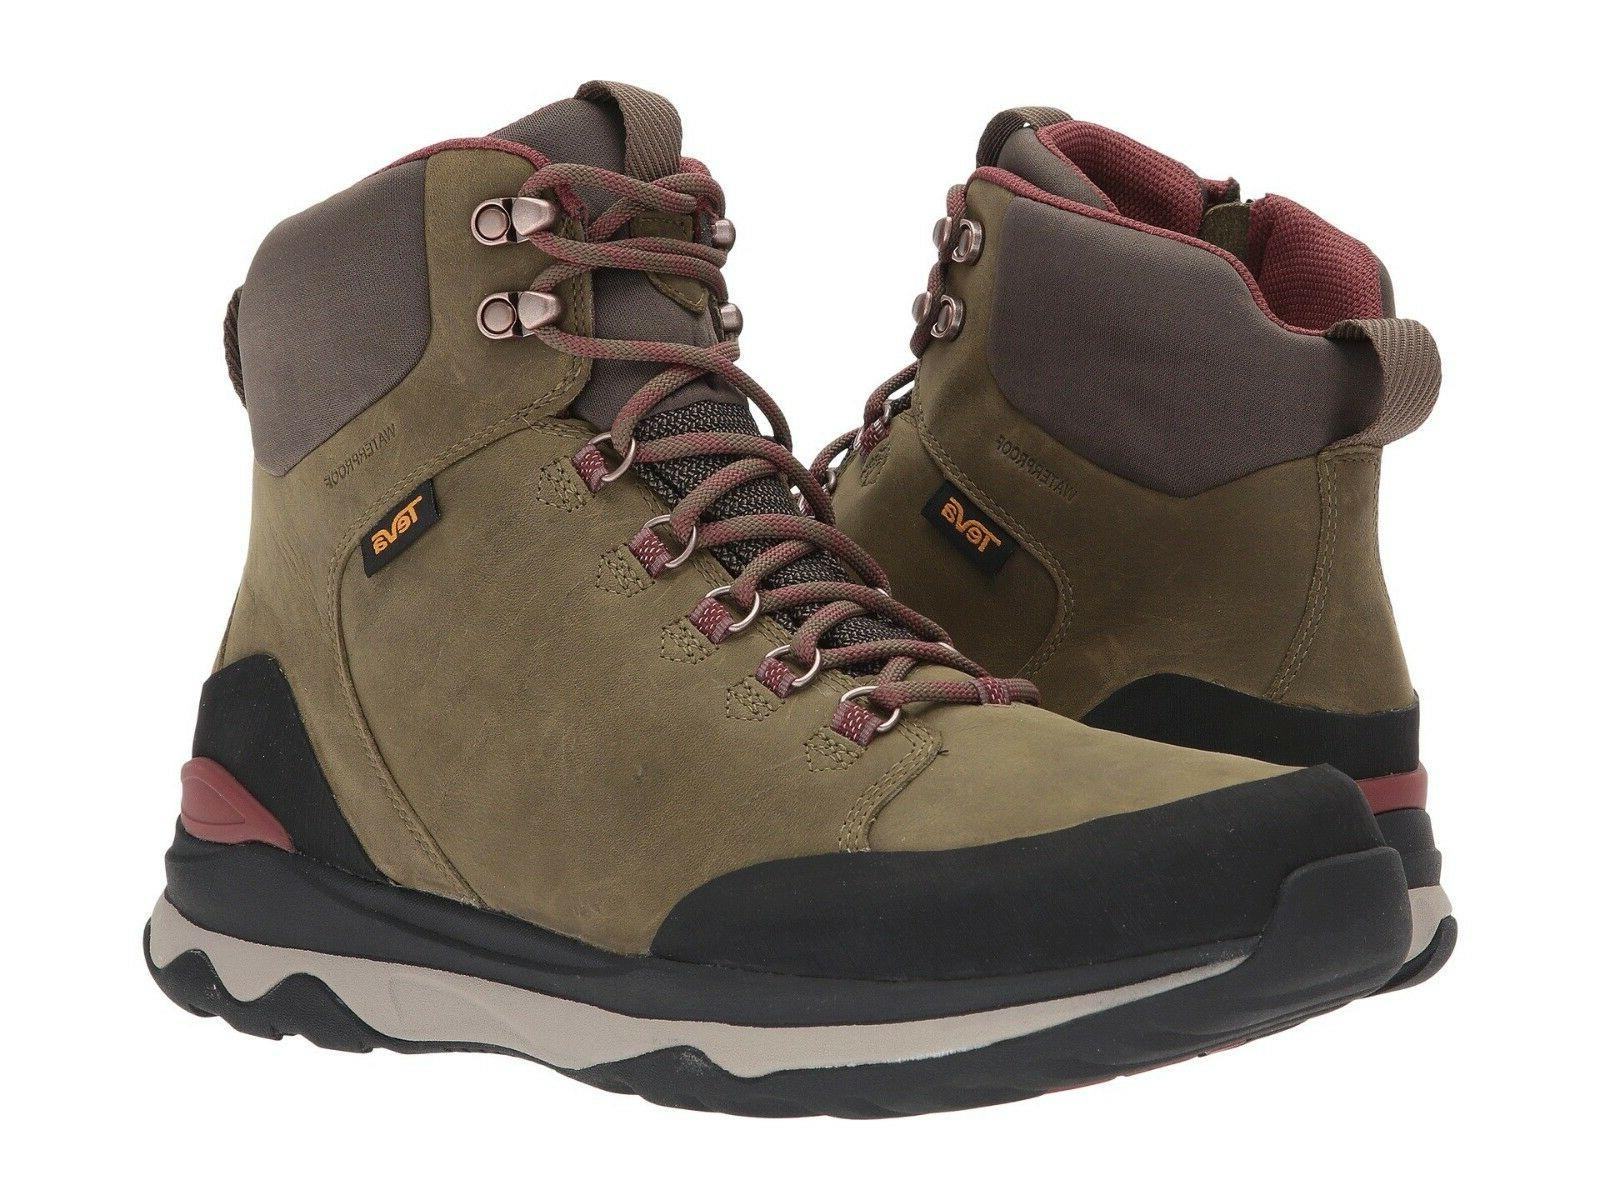 50%  OFF!  NEW  MEN'S TEVA  ARROWOOD  UTILITY TALL HIKING BO